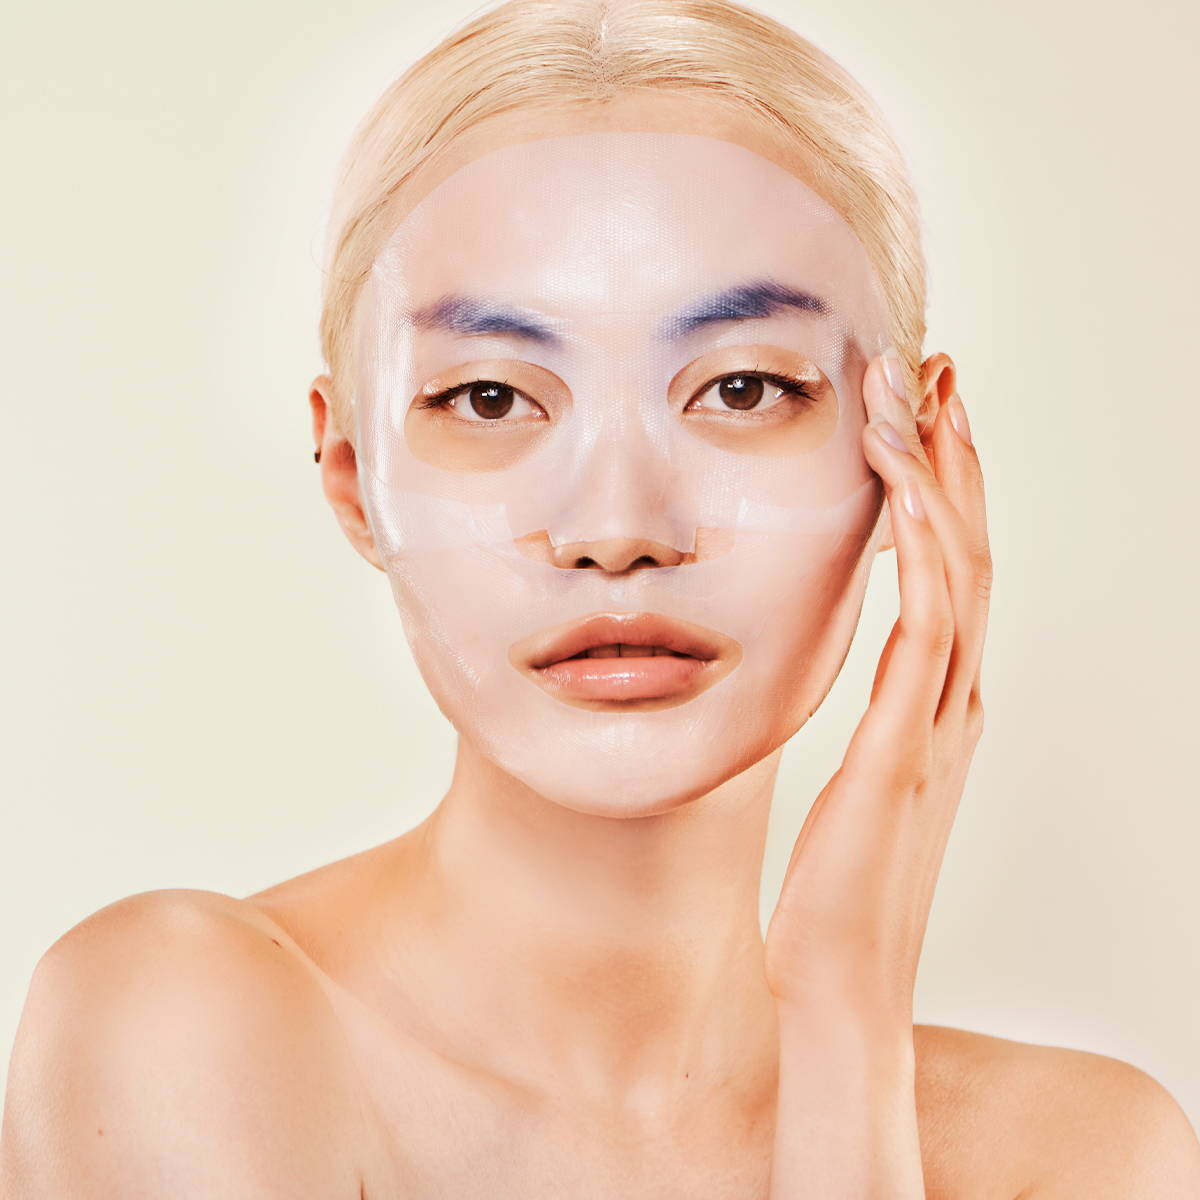 SPEND £100 AND RECEIVE A COMPLIMENTARY SINGLE ANTI BLEMISH BIO CELLULOSE FACIAL MASK